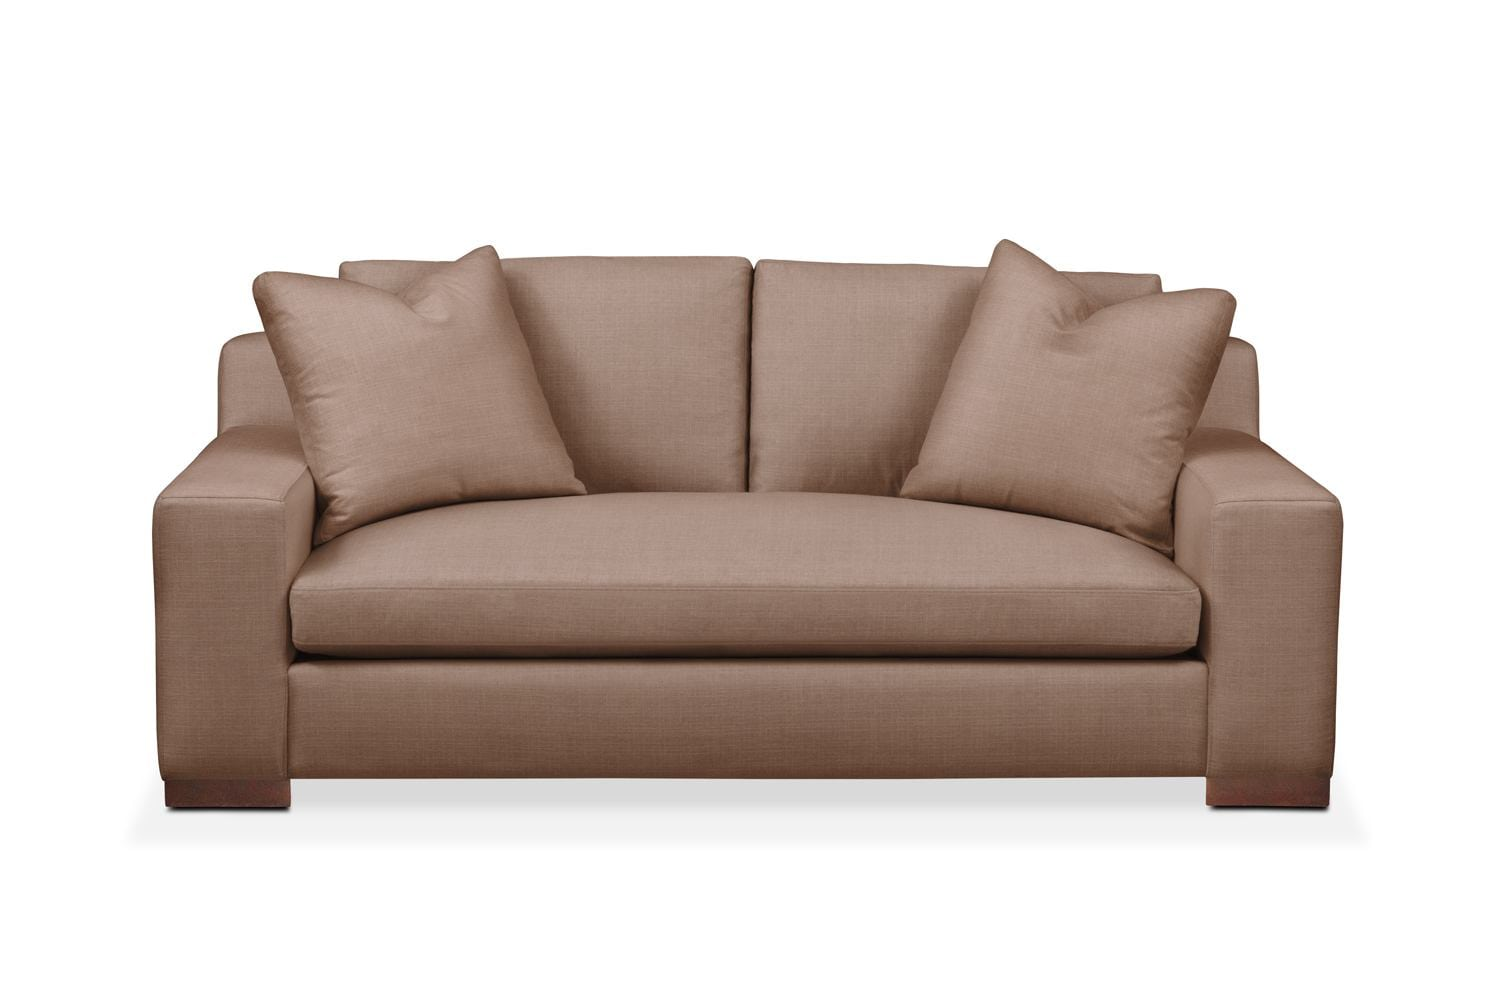 Ethan Apartment Sofa